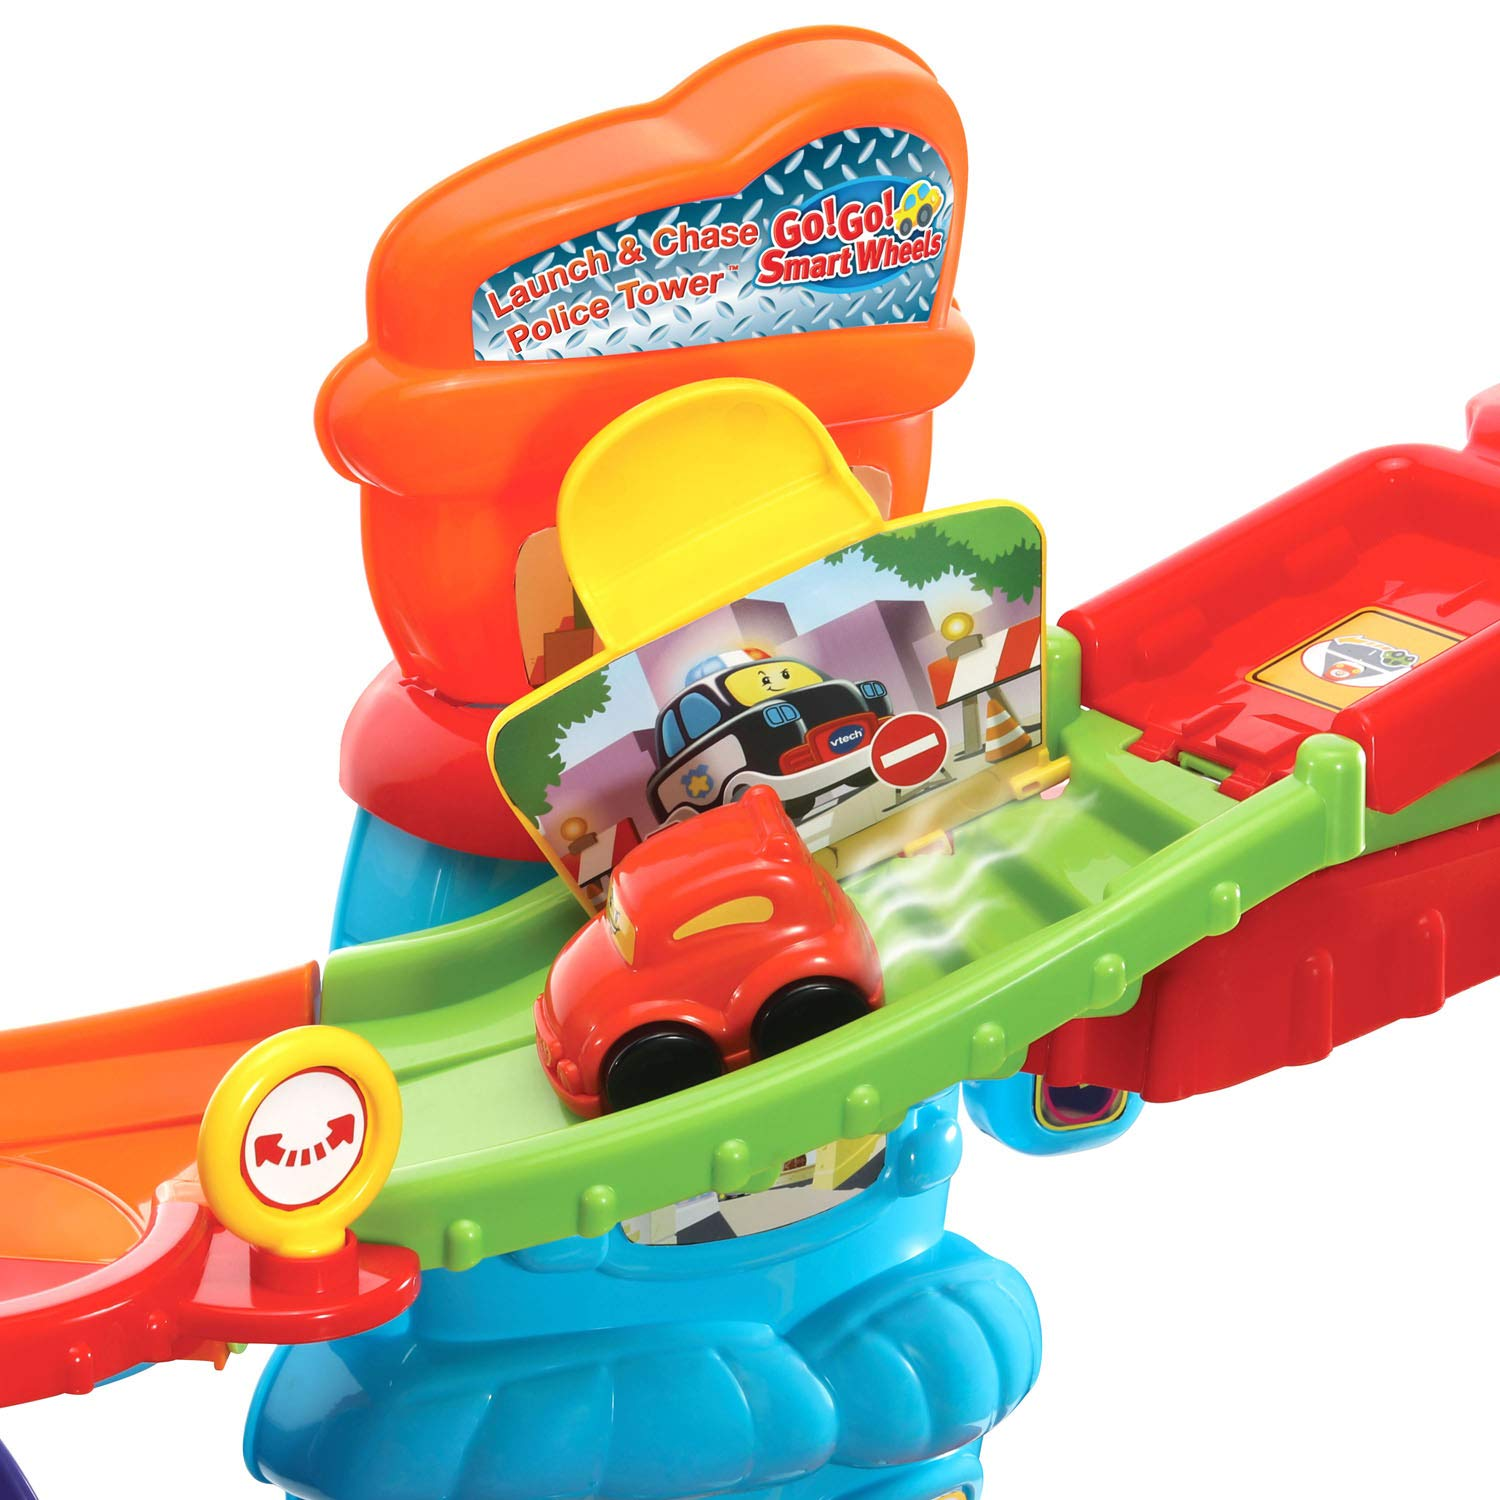 VTech Go! Go! Smart Wheels Launch and Chase Police Tower by VTech (Image #9)